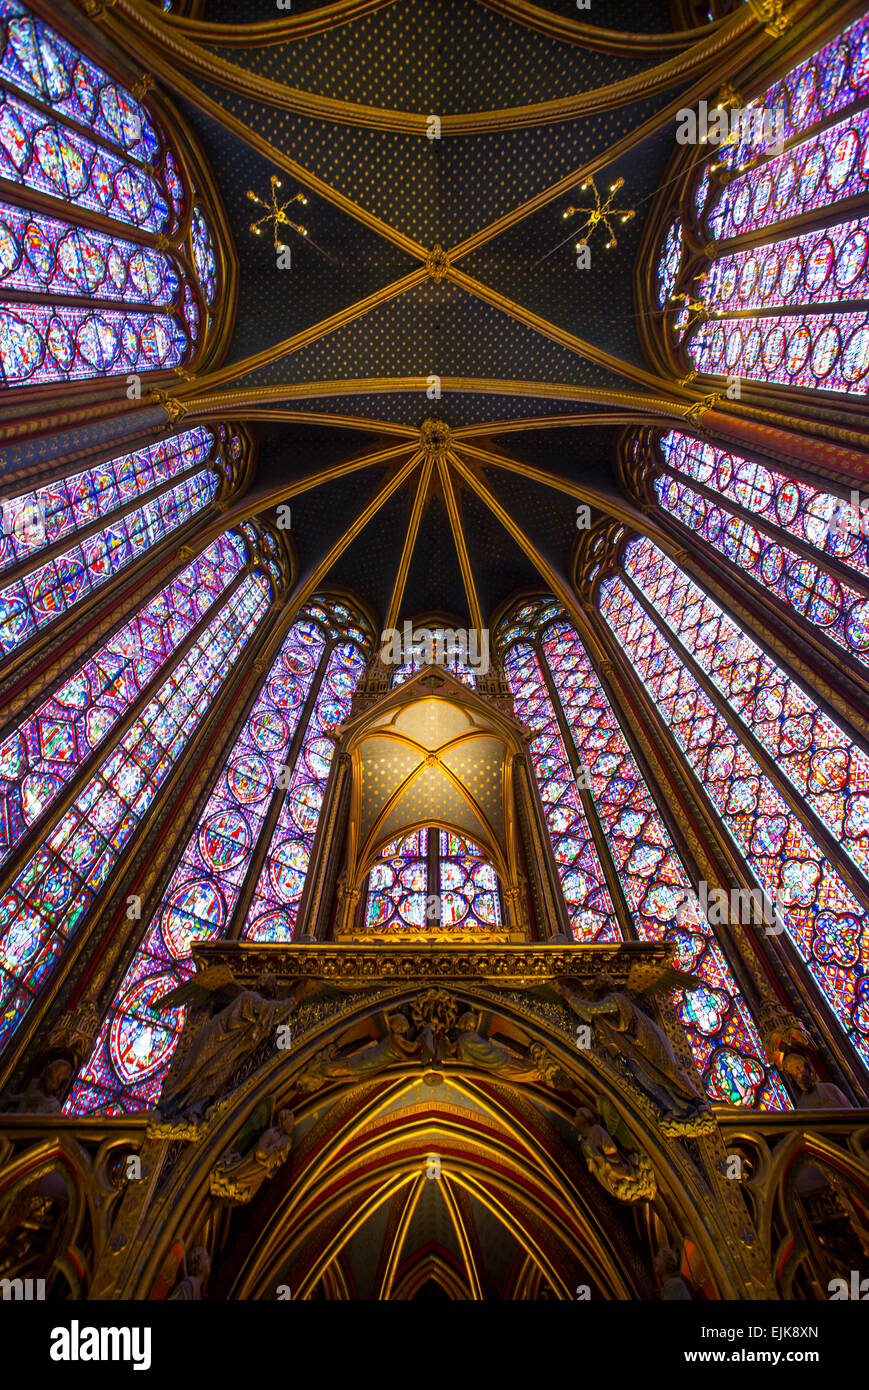 Stained glass windows of Sainte Chapelle, Paris, France - Stock Image